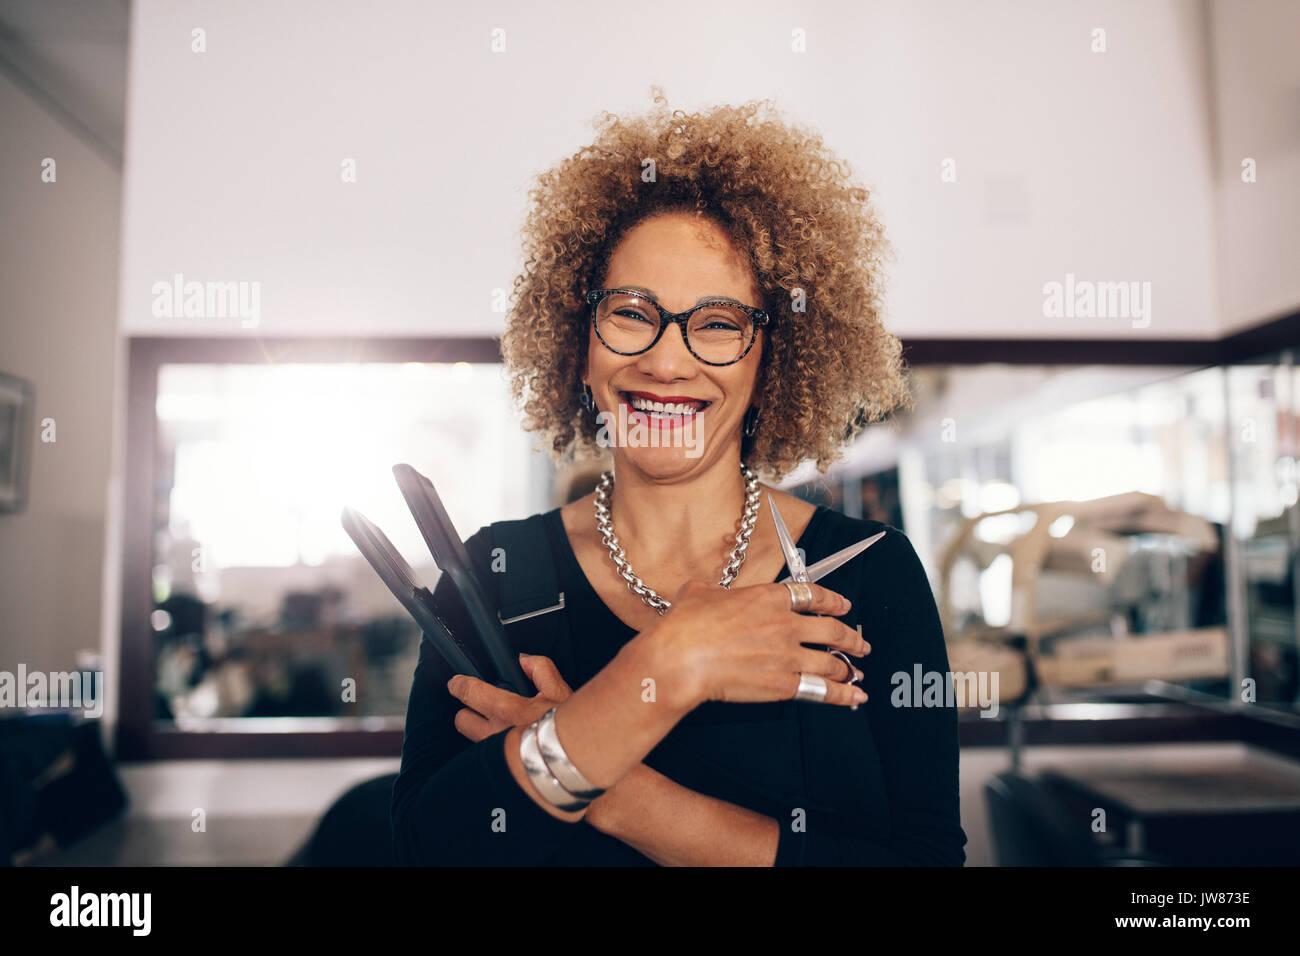 Hairdresser holding a hair straightener and scissors. Closeup of curly haired woman hairdresser in happy mood at the salon. - Stock Image